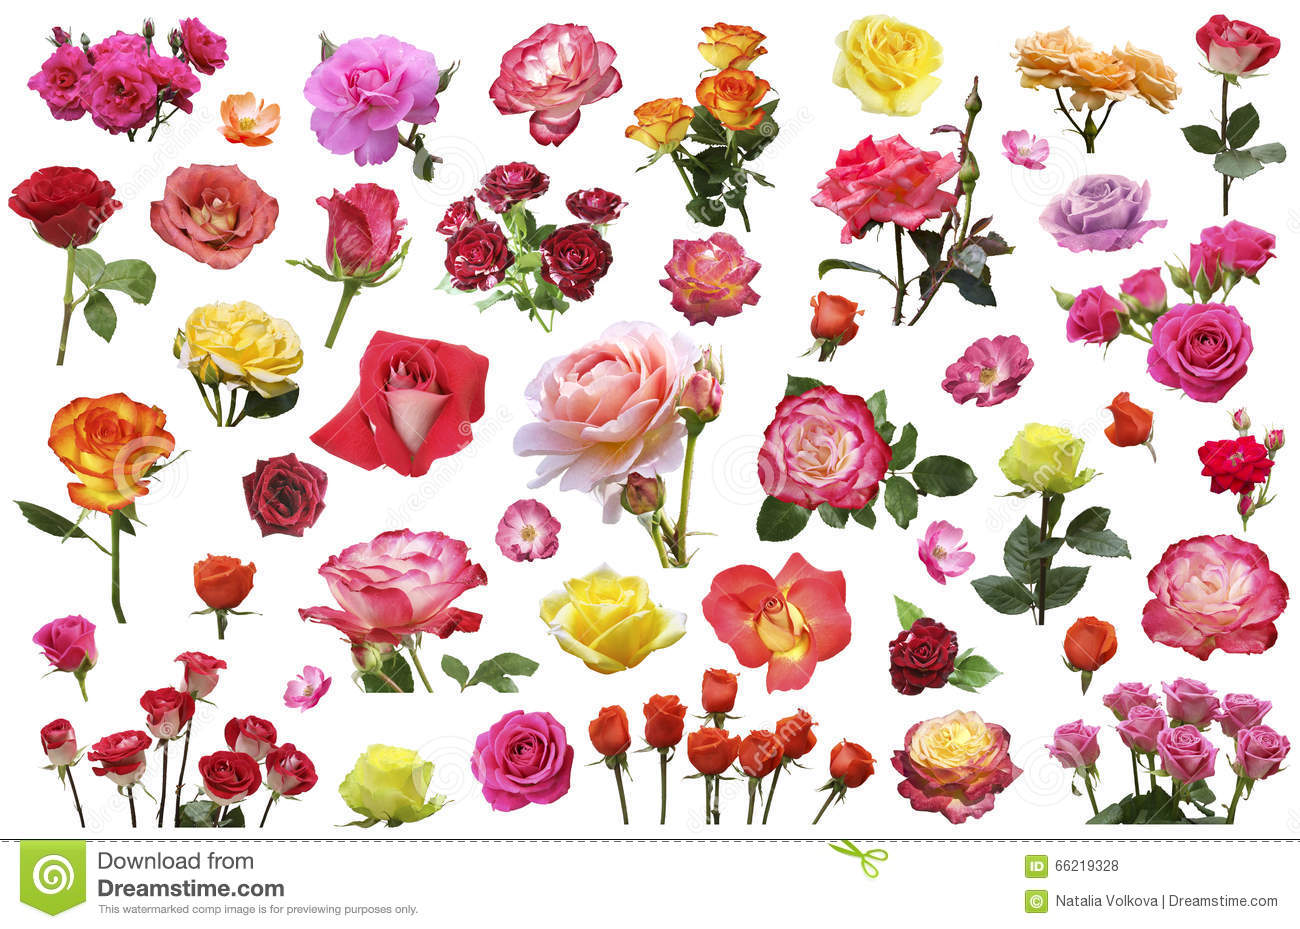 A collage of flowers of roses of different colors and - Clase de flores y sus nombres ...